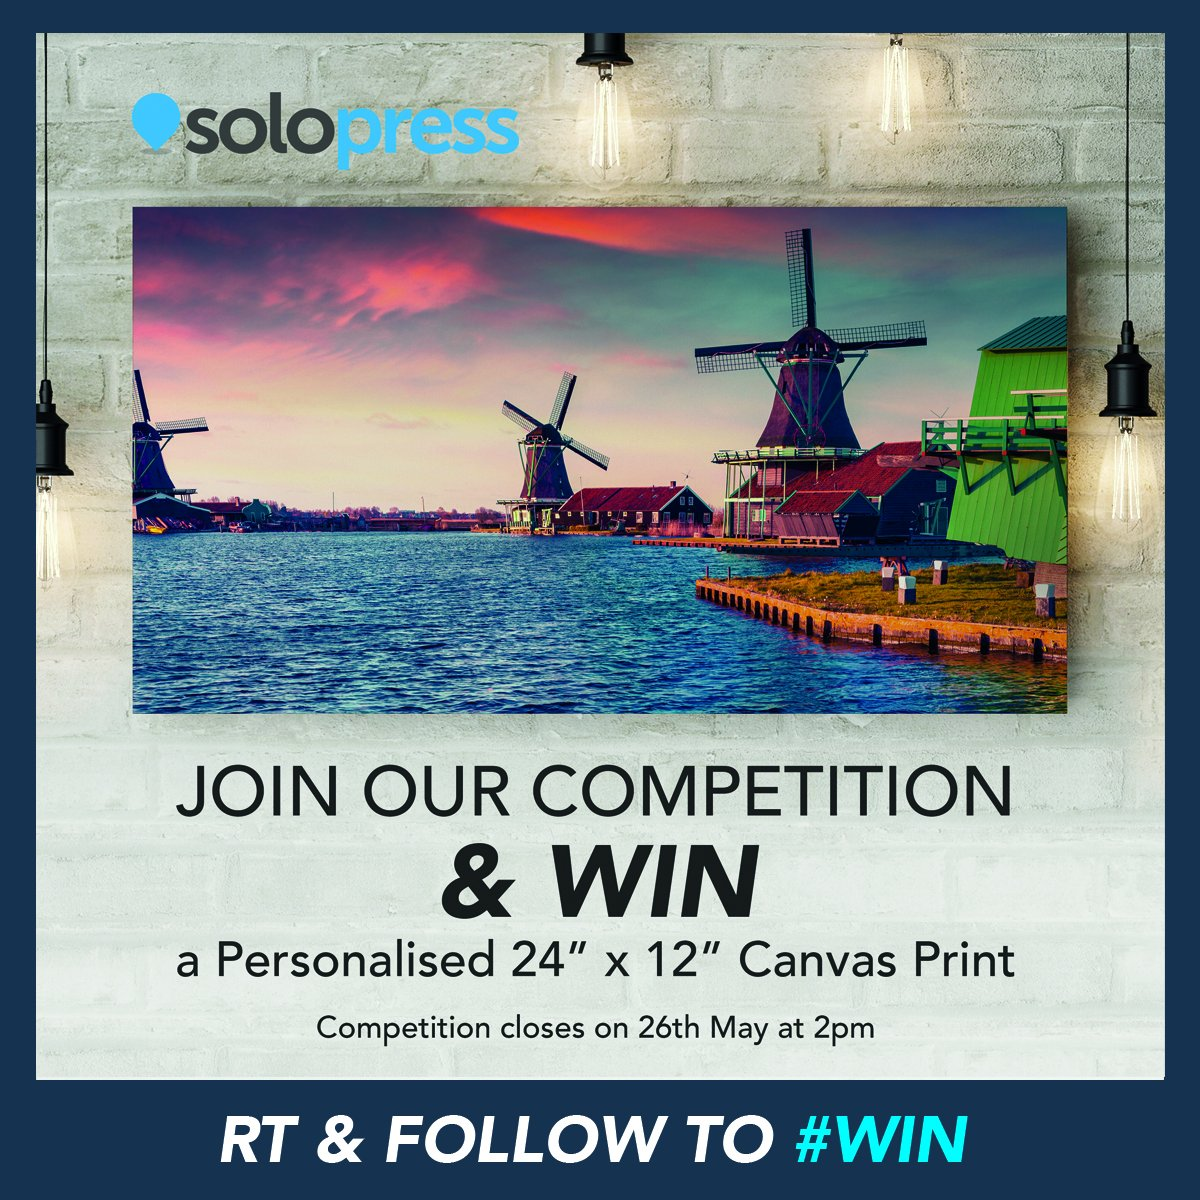 Have you entered our #competition yet? #WIN a #Canvas with YOUR design! Simply RT &amp; FOLLOW @solopress   #giveaway #giveaways #competitions<br>http://pic.twitter.com/NxO93N5lha